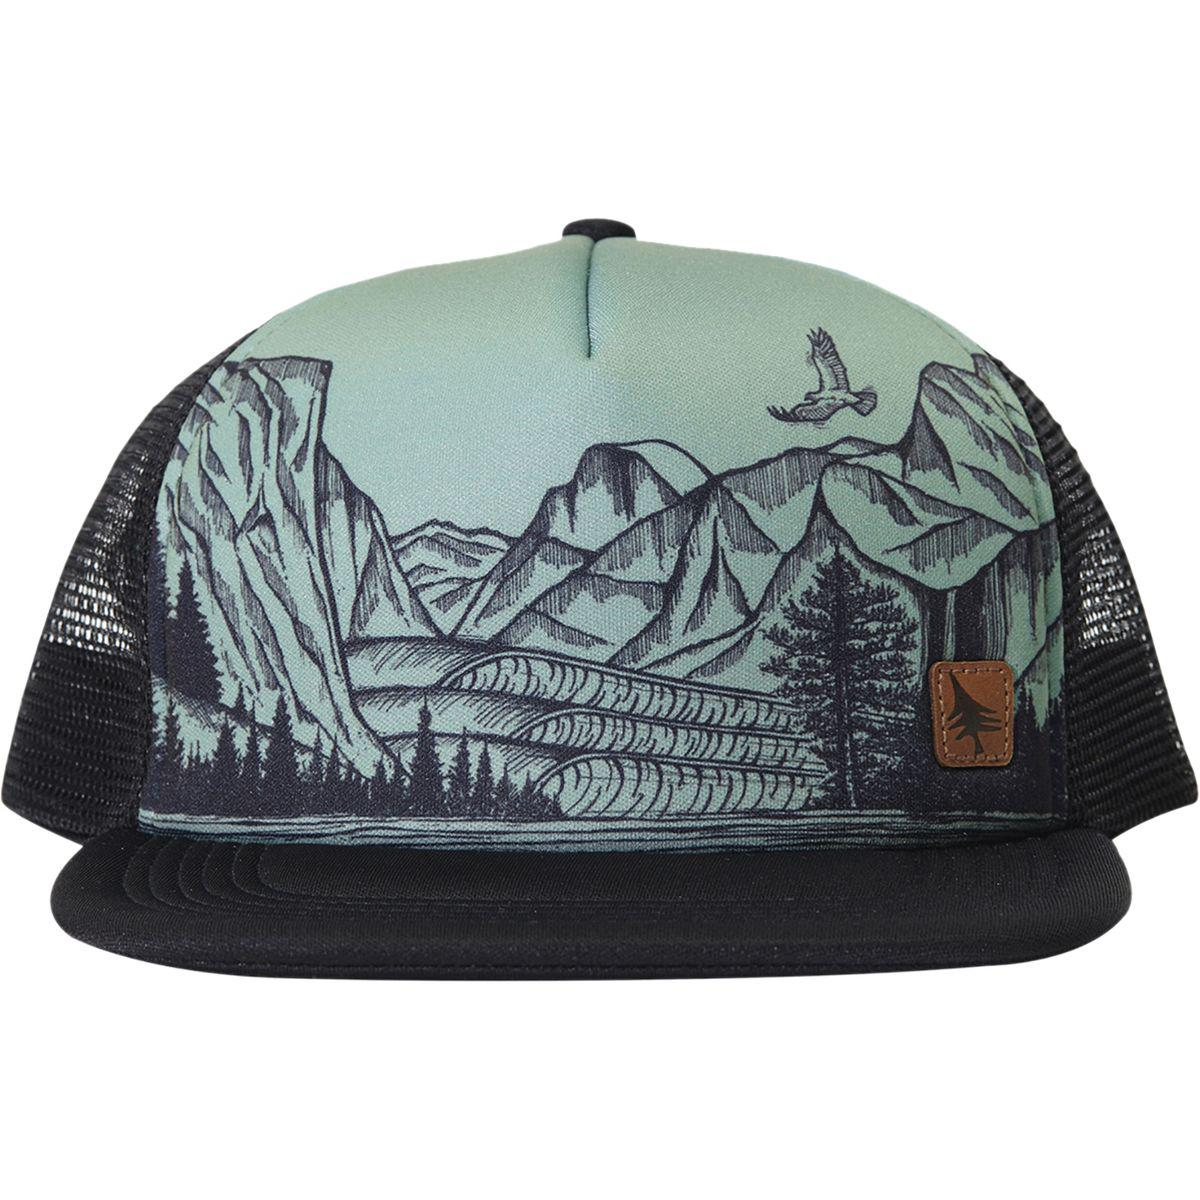 Lyst - HippyTree Yosemite Trucker Hat in Black for Men 0f5685748b80